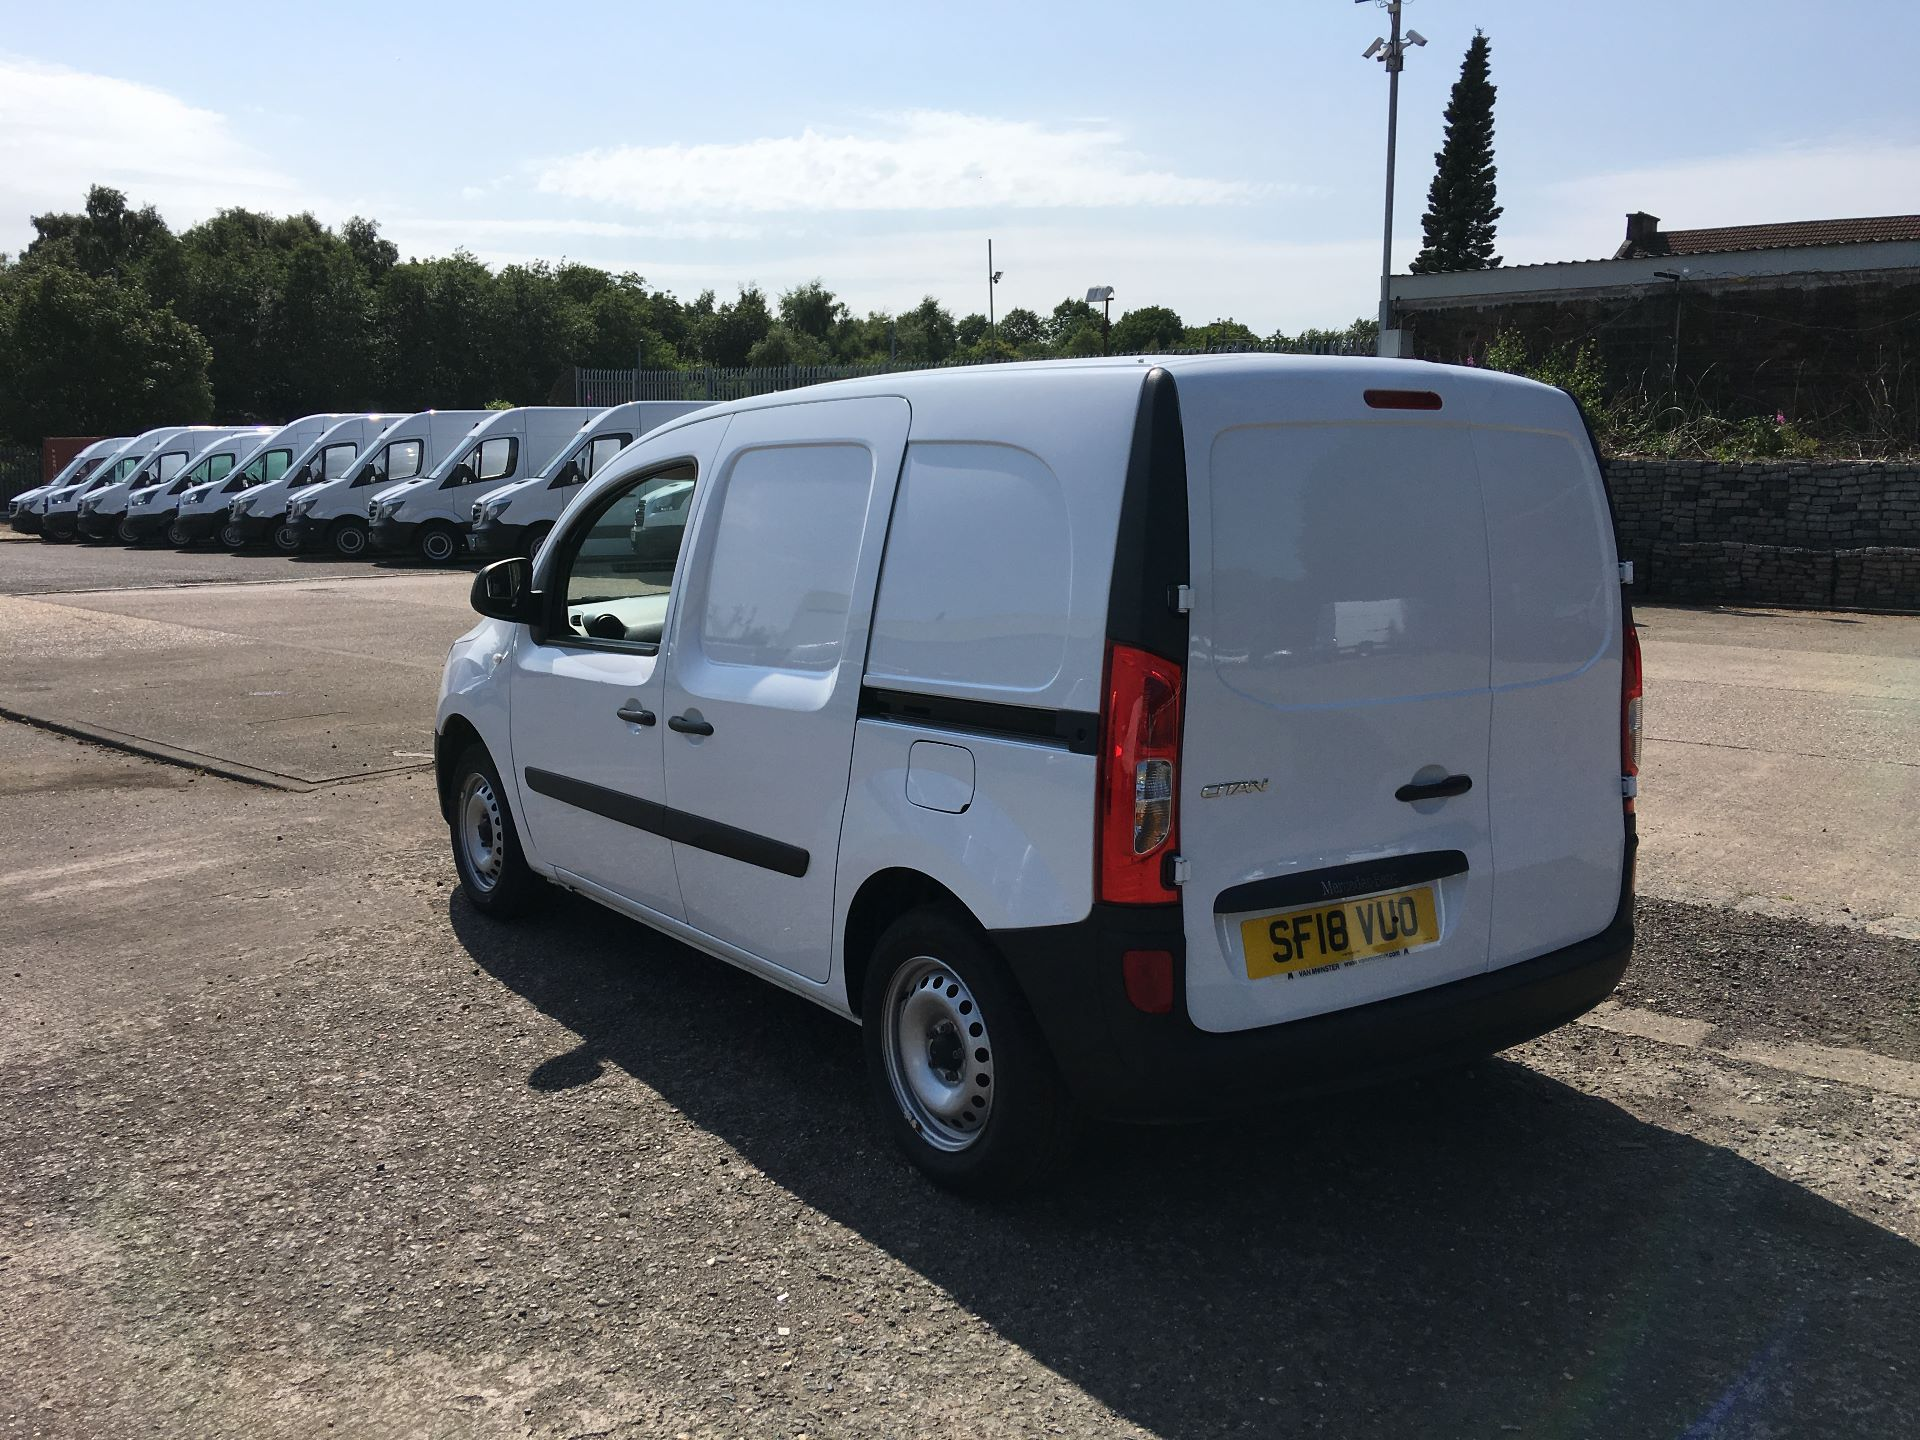 2018 Mercedes-Benz Citan LWB 109 CDI BLUE EFFICIENCY VAN EURO 5/6 (SF18VUO) Image 12